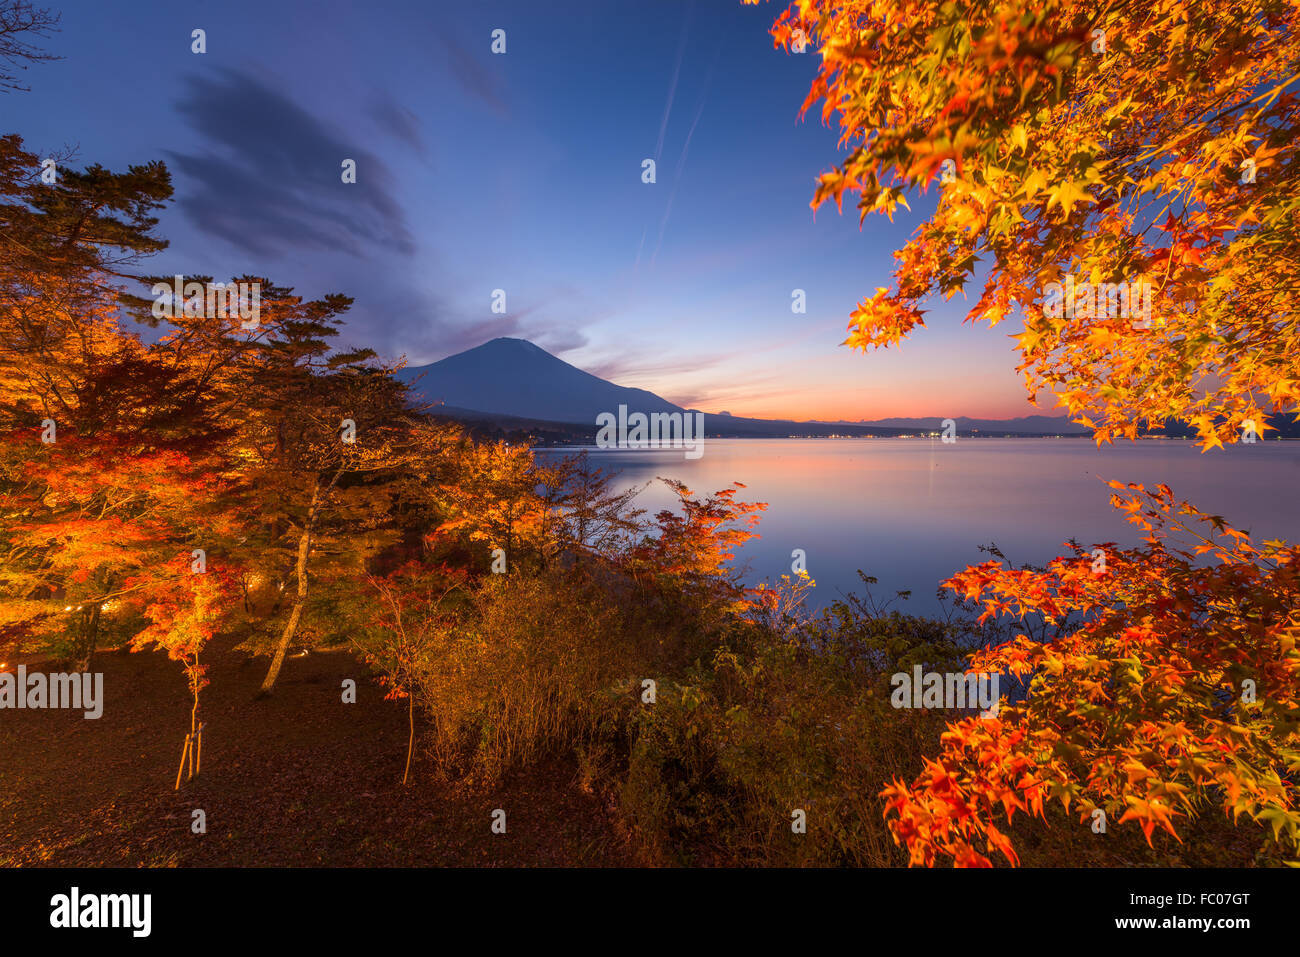 Mt. Fuji, Japan during autumn from the shore of Lake Yamanaka. - Stock Image